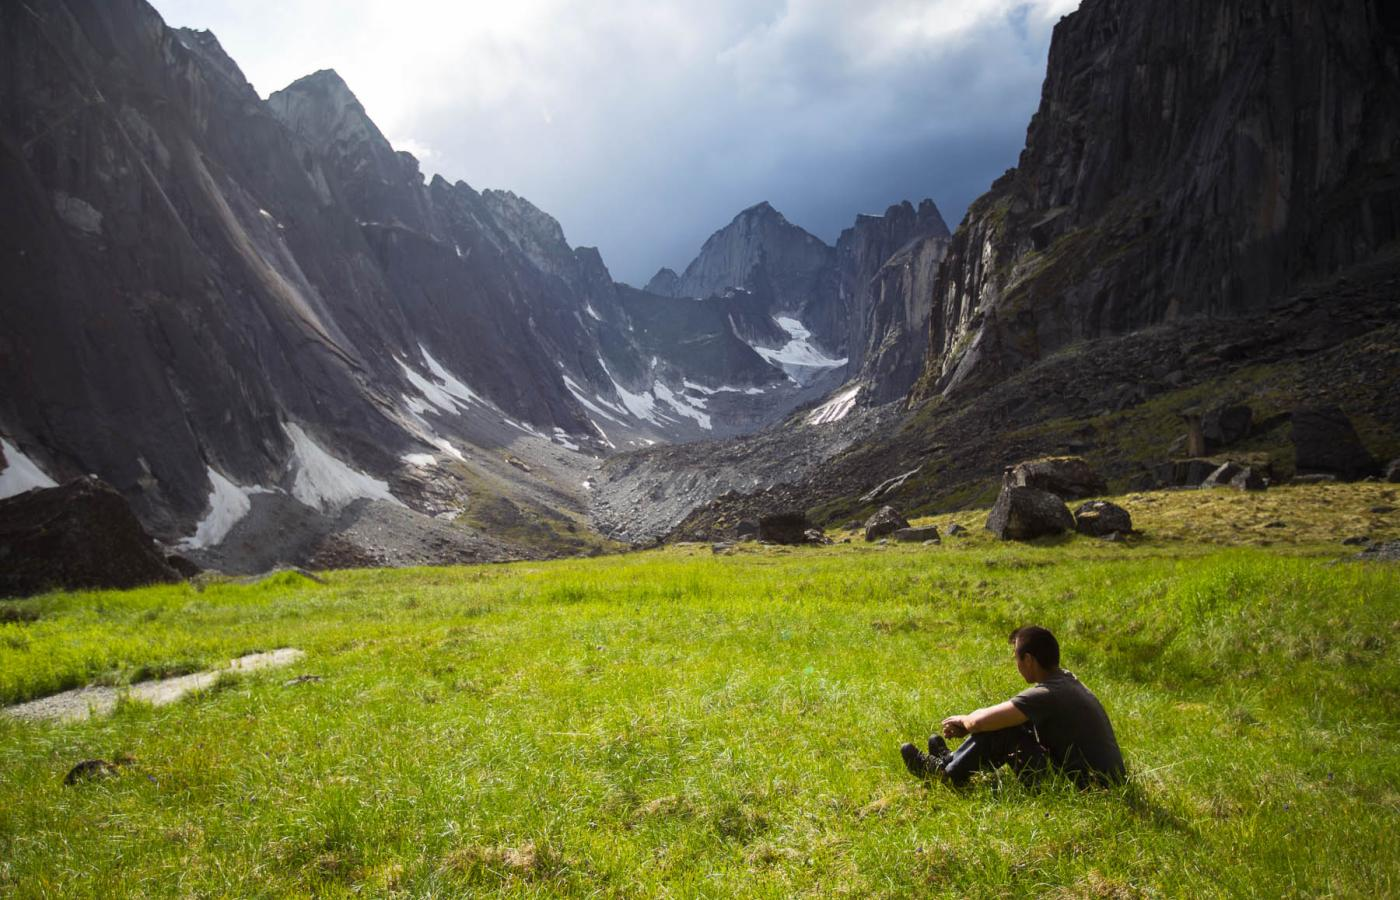 A person relaxes on a meadow of green at the foot of craggy mountains